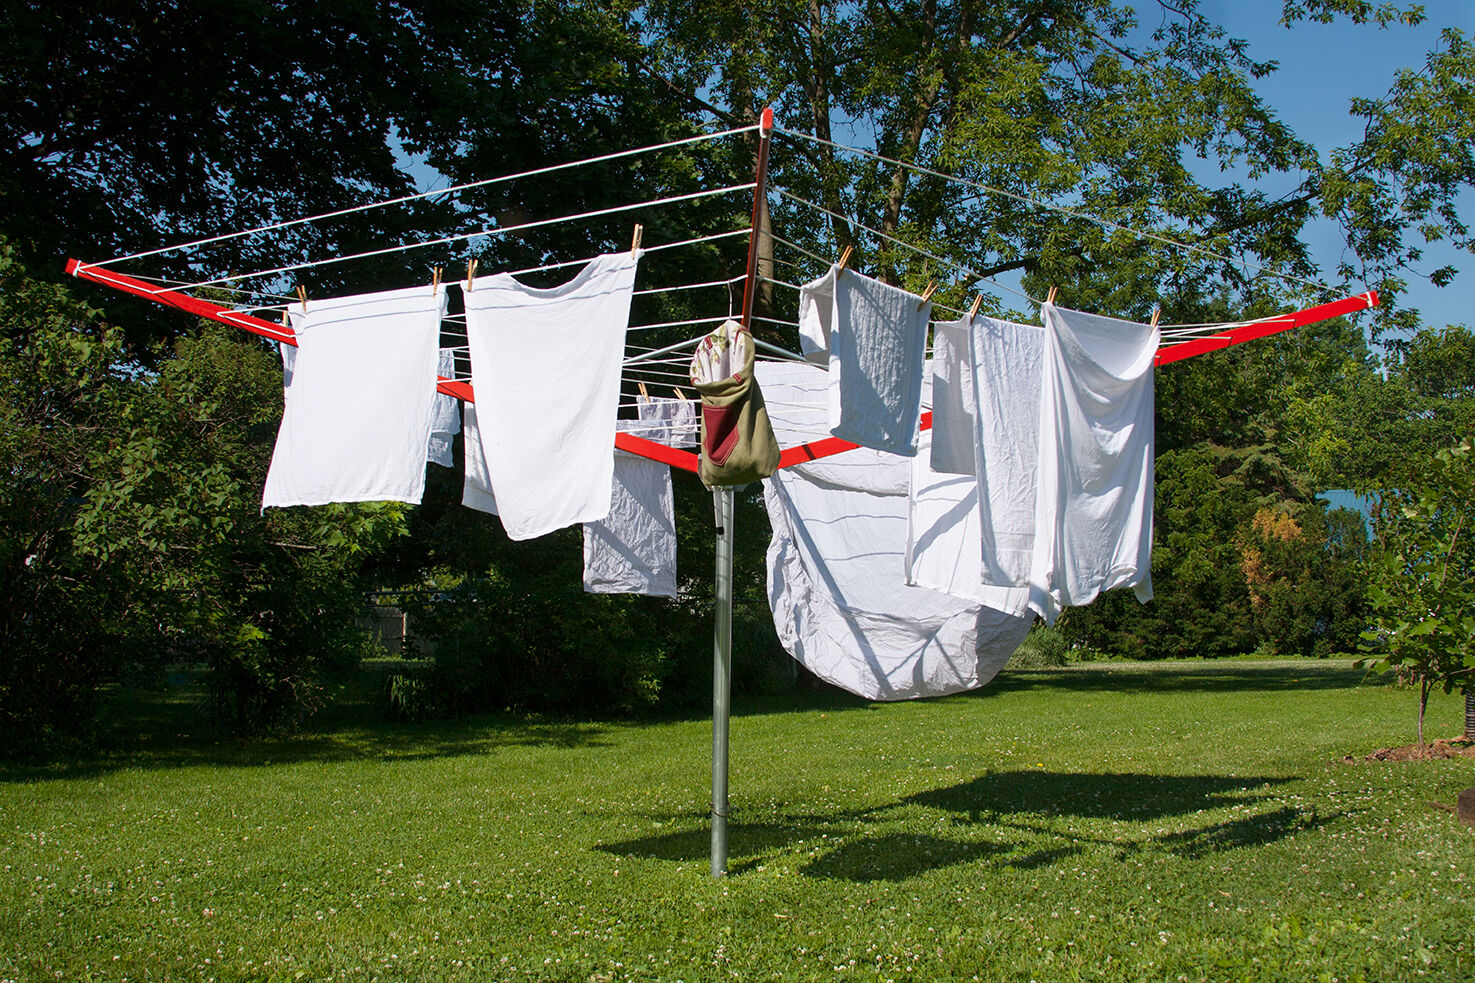 SUNSHINE CLOTHESLINE OUTDOOR UMBRELLA CLOTHES DRYER DL14